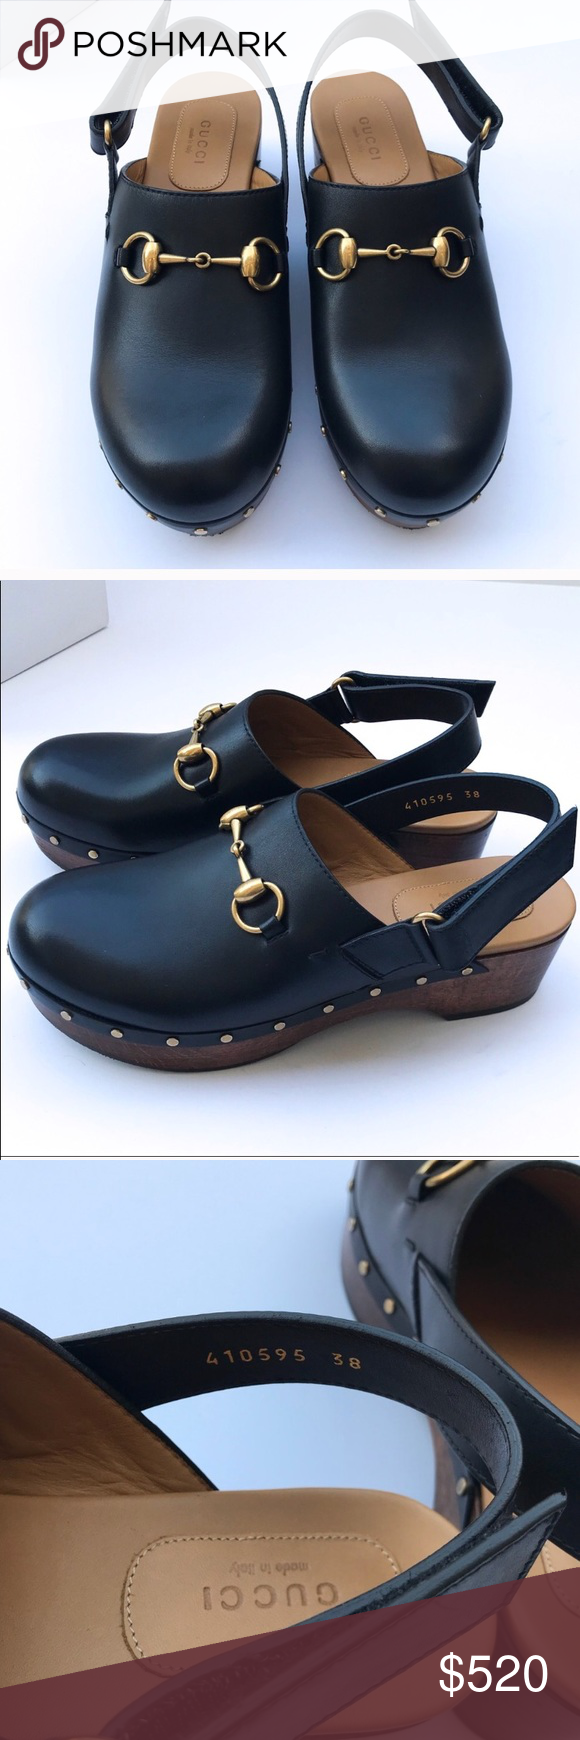 2ff7a371702 Gucci Anita Black Leather Horse-bit Clogs These gorgeous clogs have been  expertly crafted in Italy from leather with a signature gold horsebit that  ...